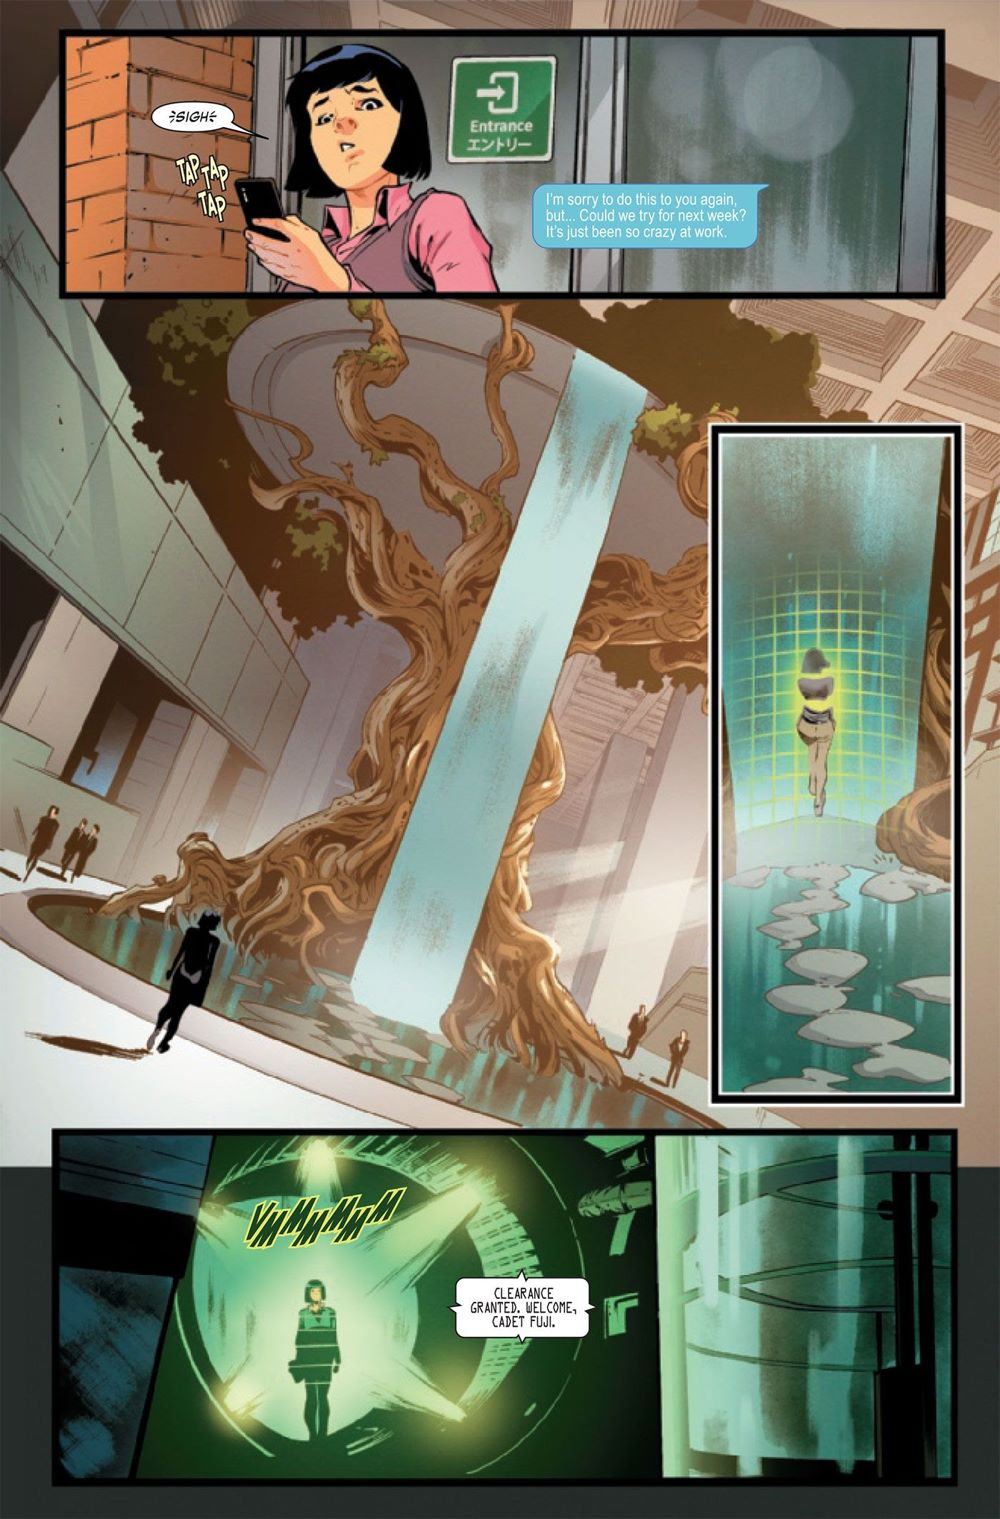 ULTRAMANRISE2020001-Preview-6 ComicList Previews: THE RISE OF ULTRAMAN #1